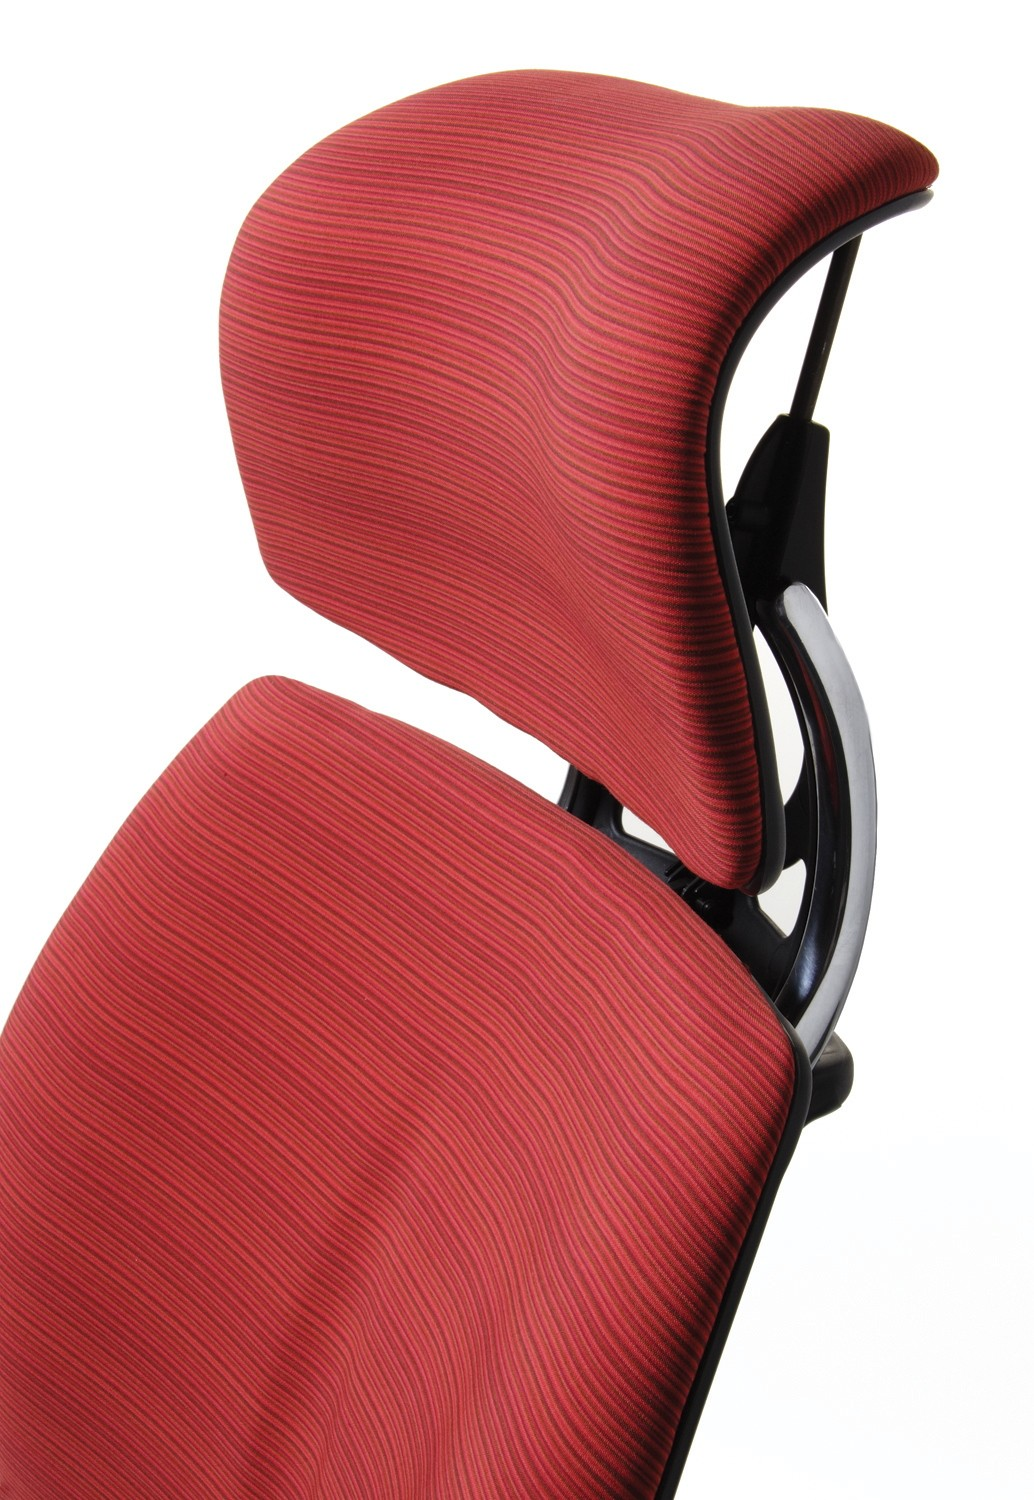 freedom task chair with headrest gliding adirondack chairs from humanscale